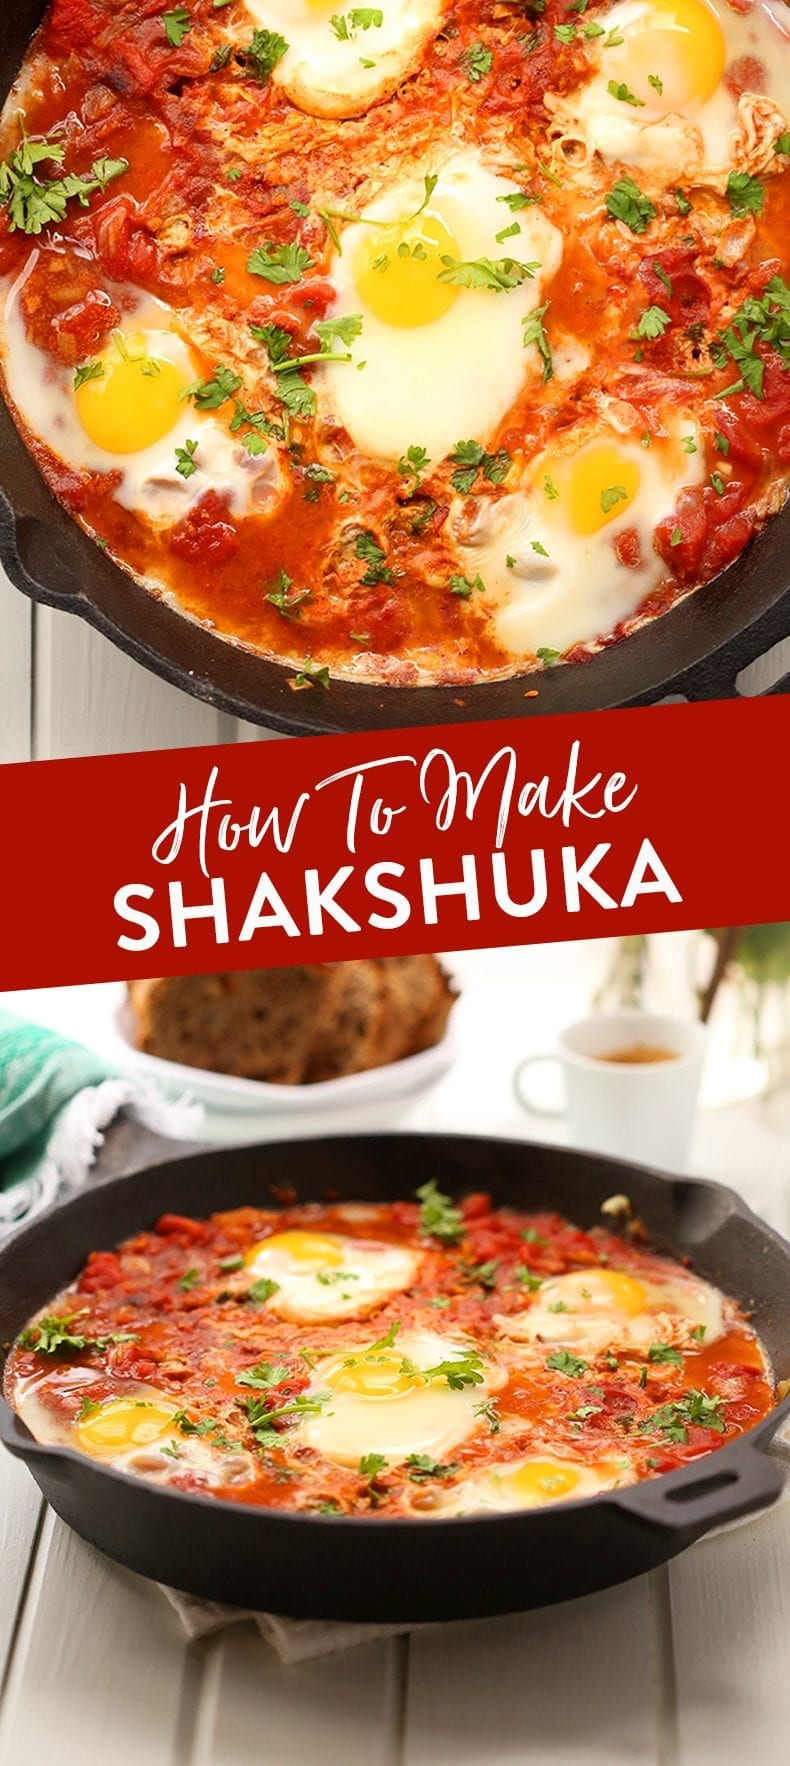 Have you ever wondered how to make shakshuka? This wonderful Middle Eastern poached egg dish made in a saucy tomato broth is the next best addition to your weekend brunch. #shashuka #eggs #bakedeggs